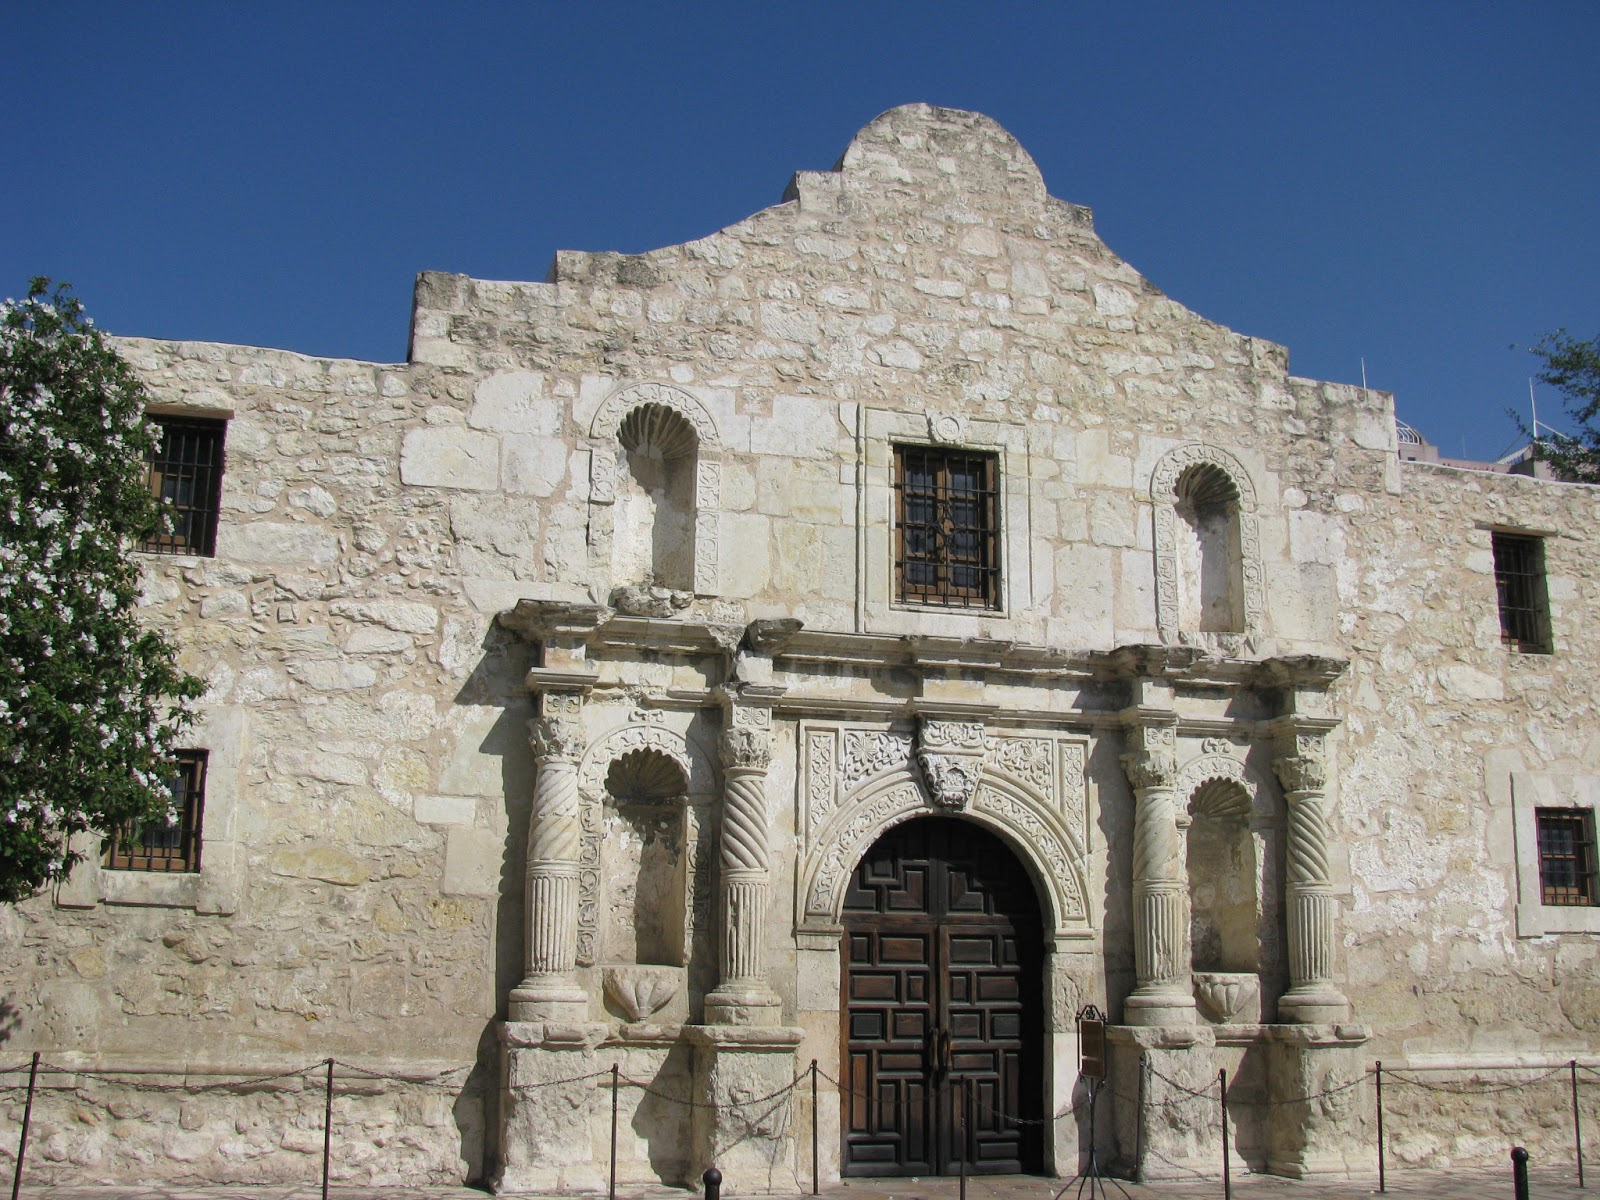 North Texas Drifter: 13 Days of Glory: Battle for the Alamo